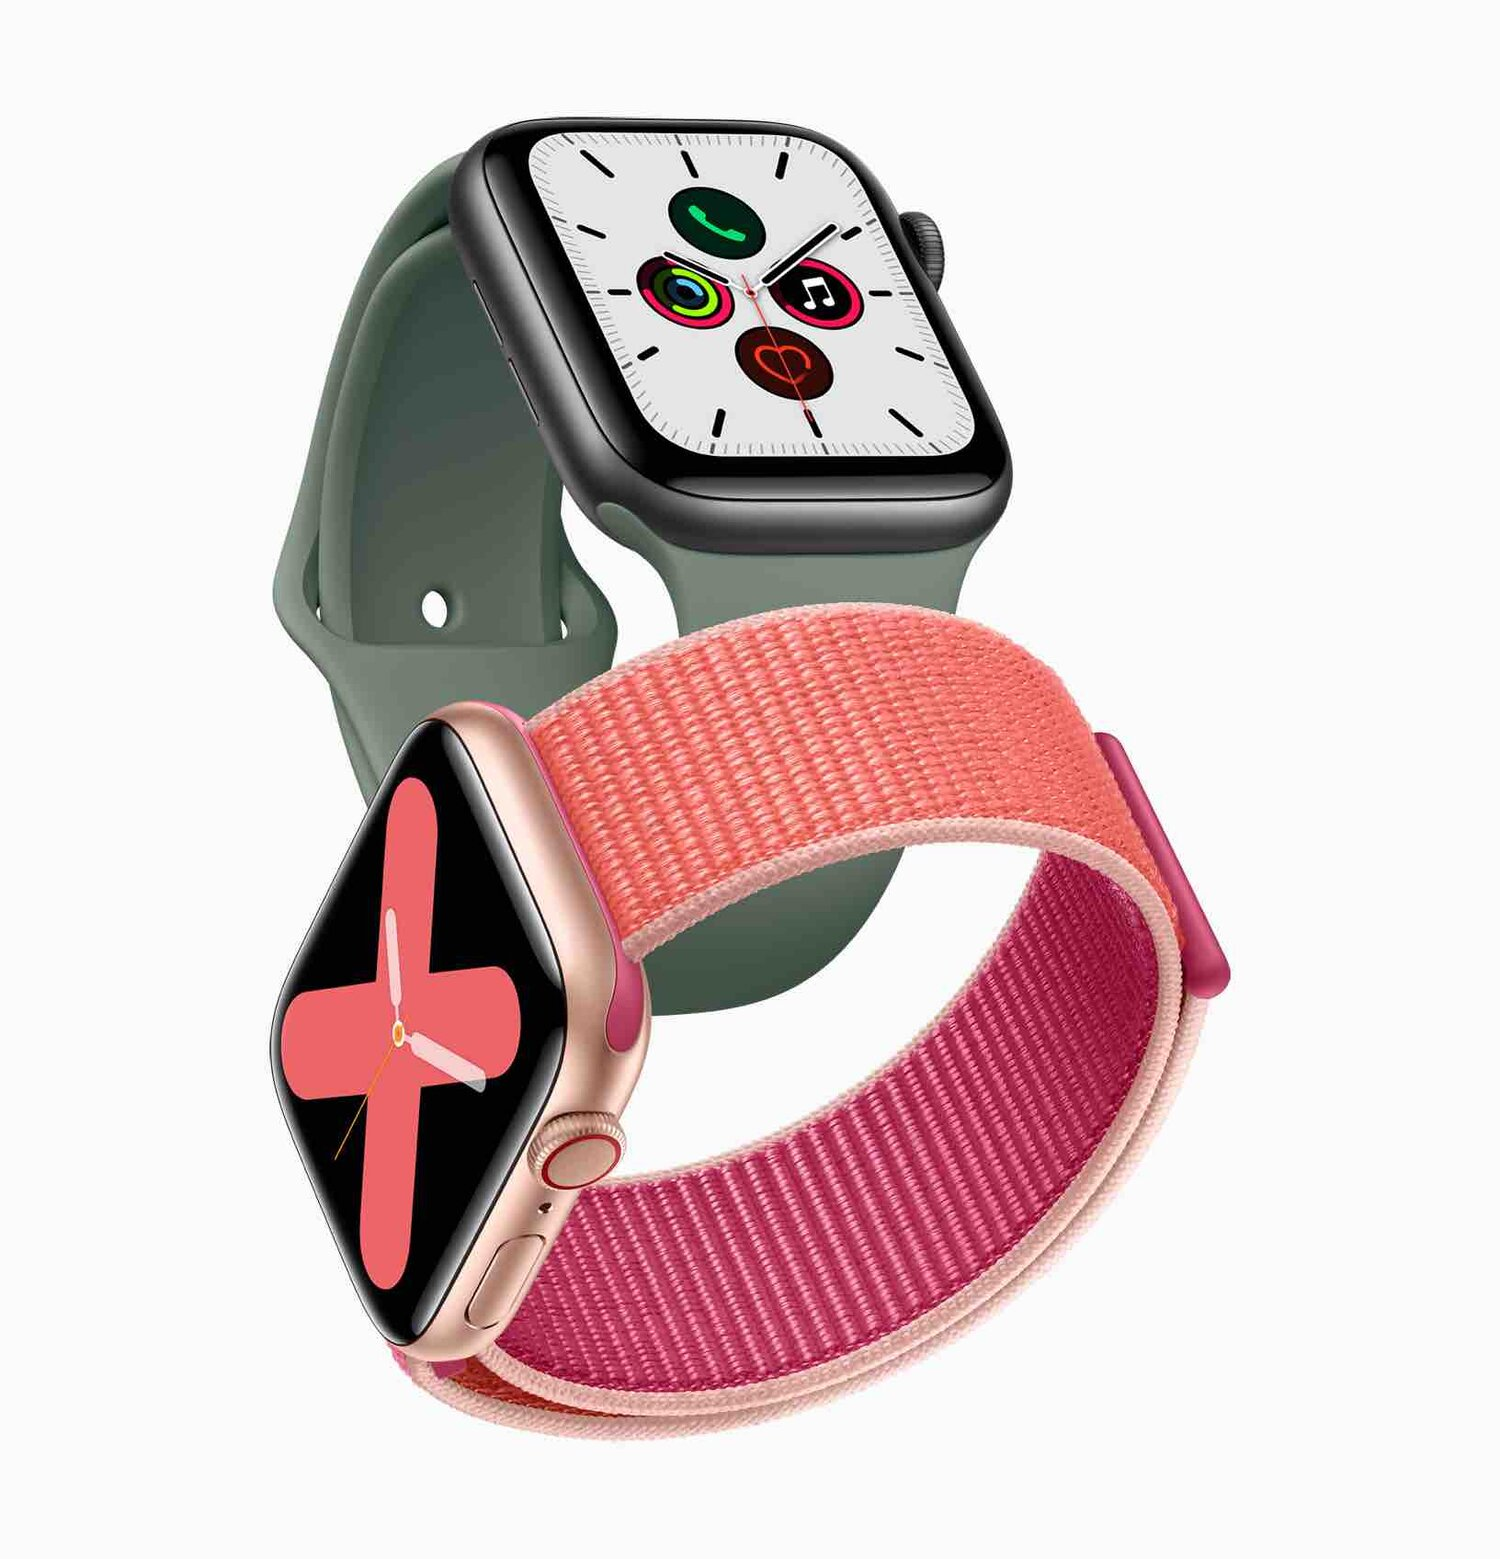 Apple_watch_series_5-gold-aluminum-case-pomegranate-band-and-space-gray-aluminum-case-pine-green-band-091019_big.jpg.large_2x.jpg